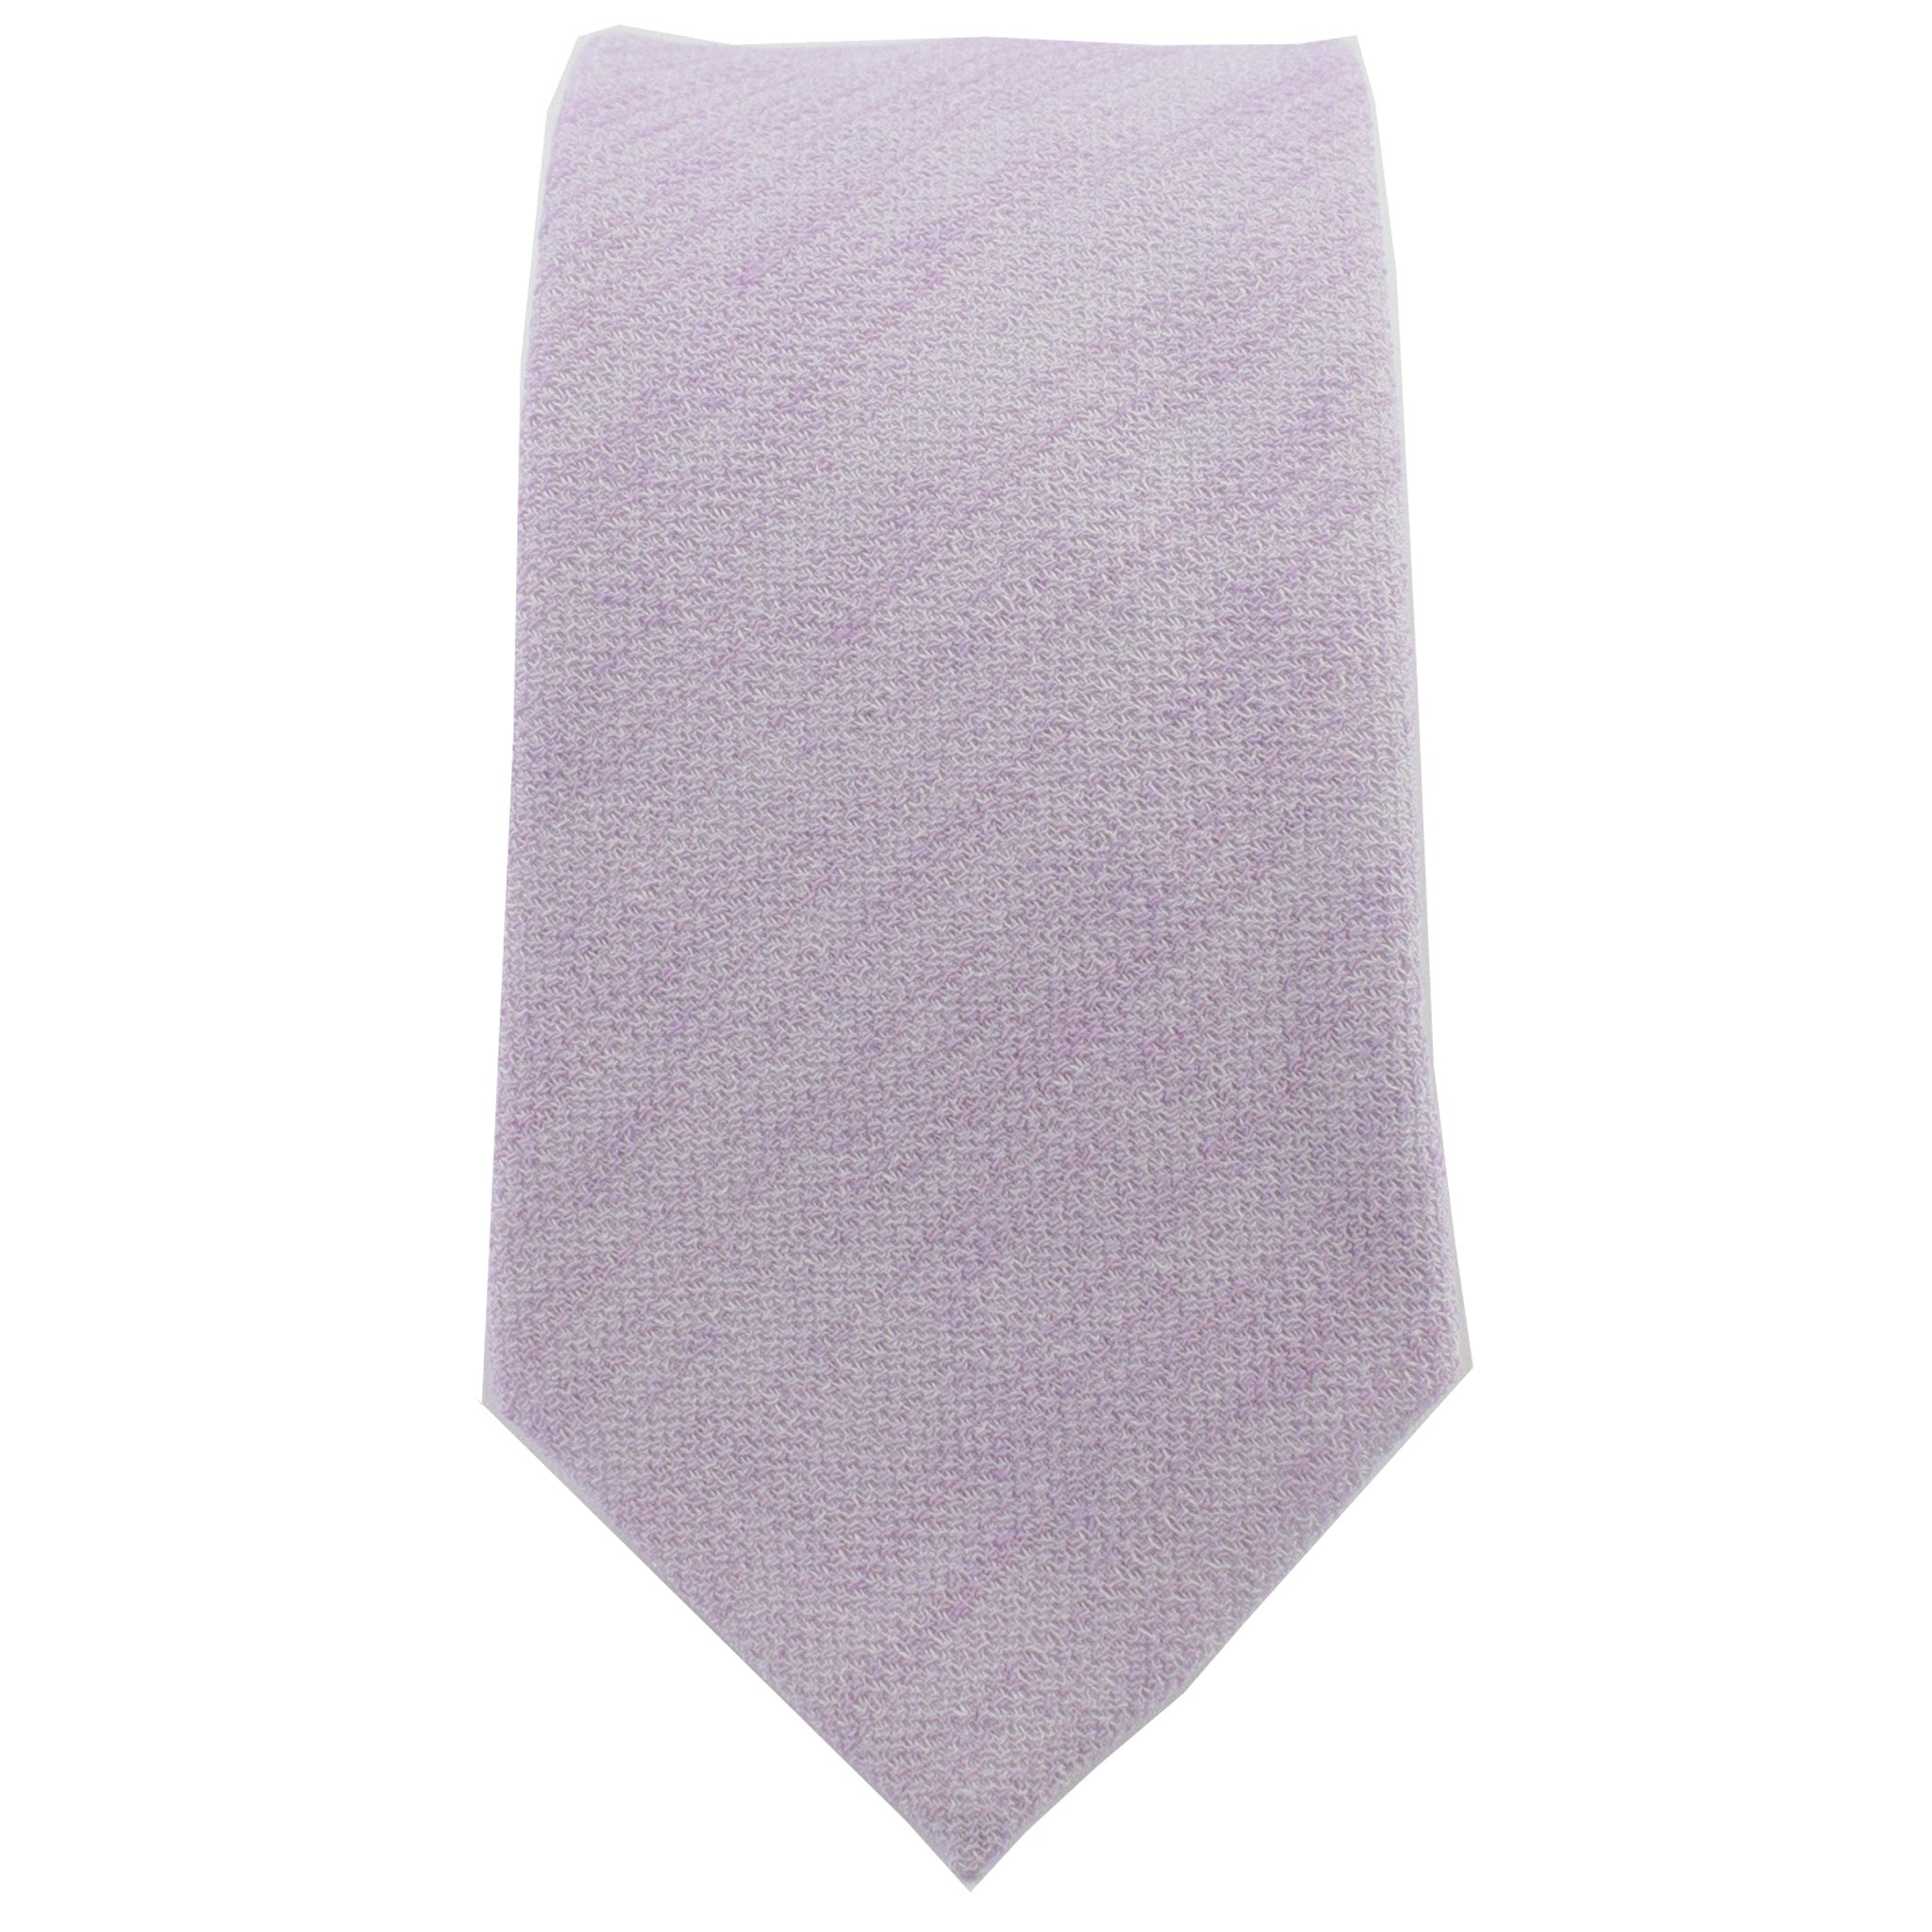 Lavender Cloud Tie from DIBI